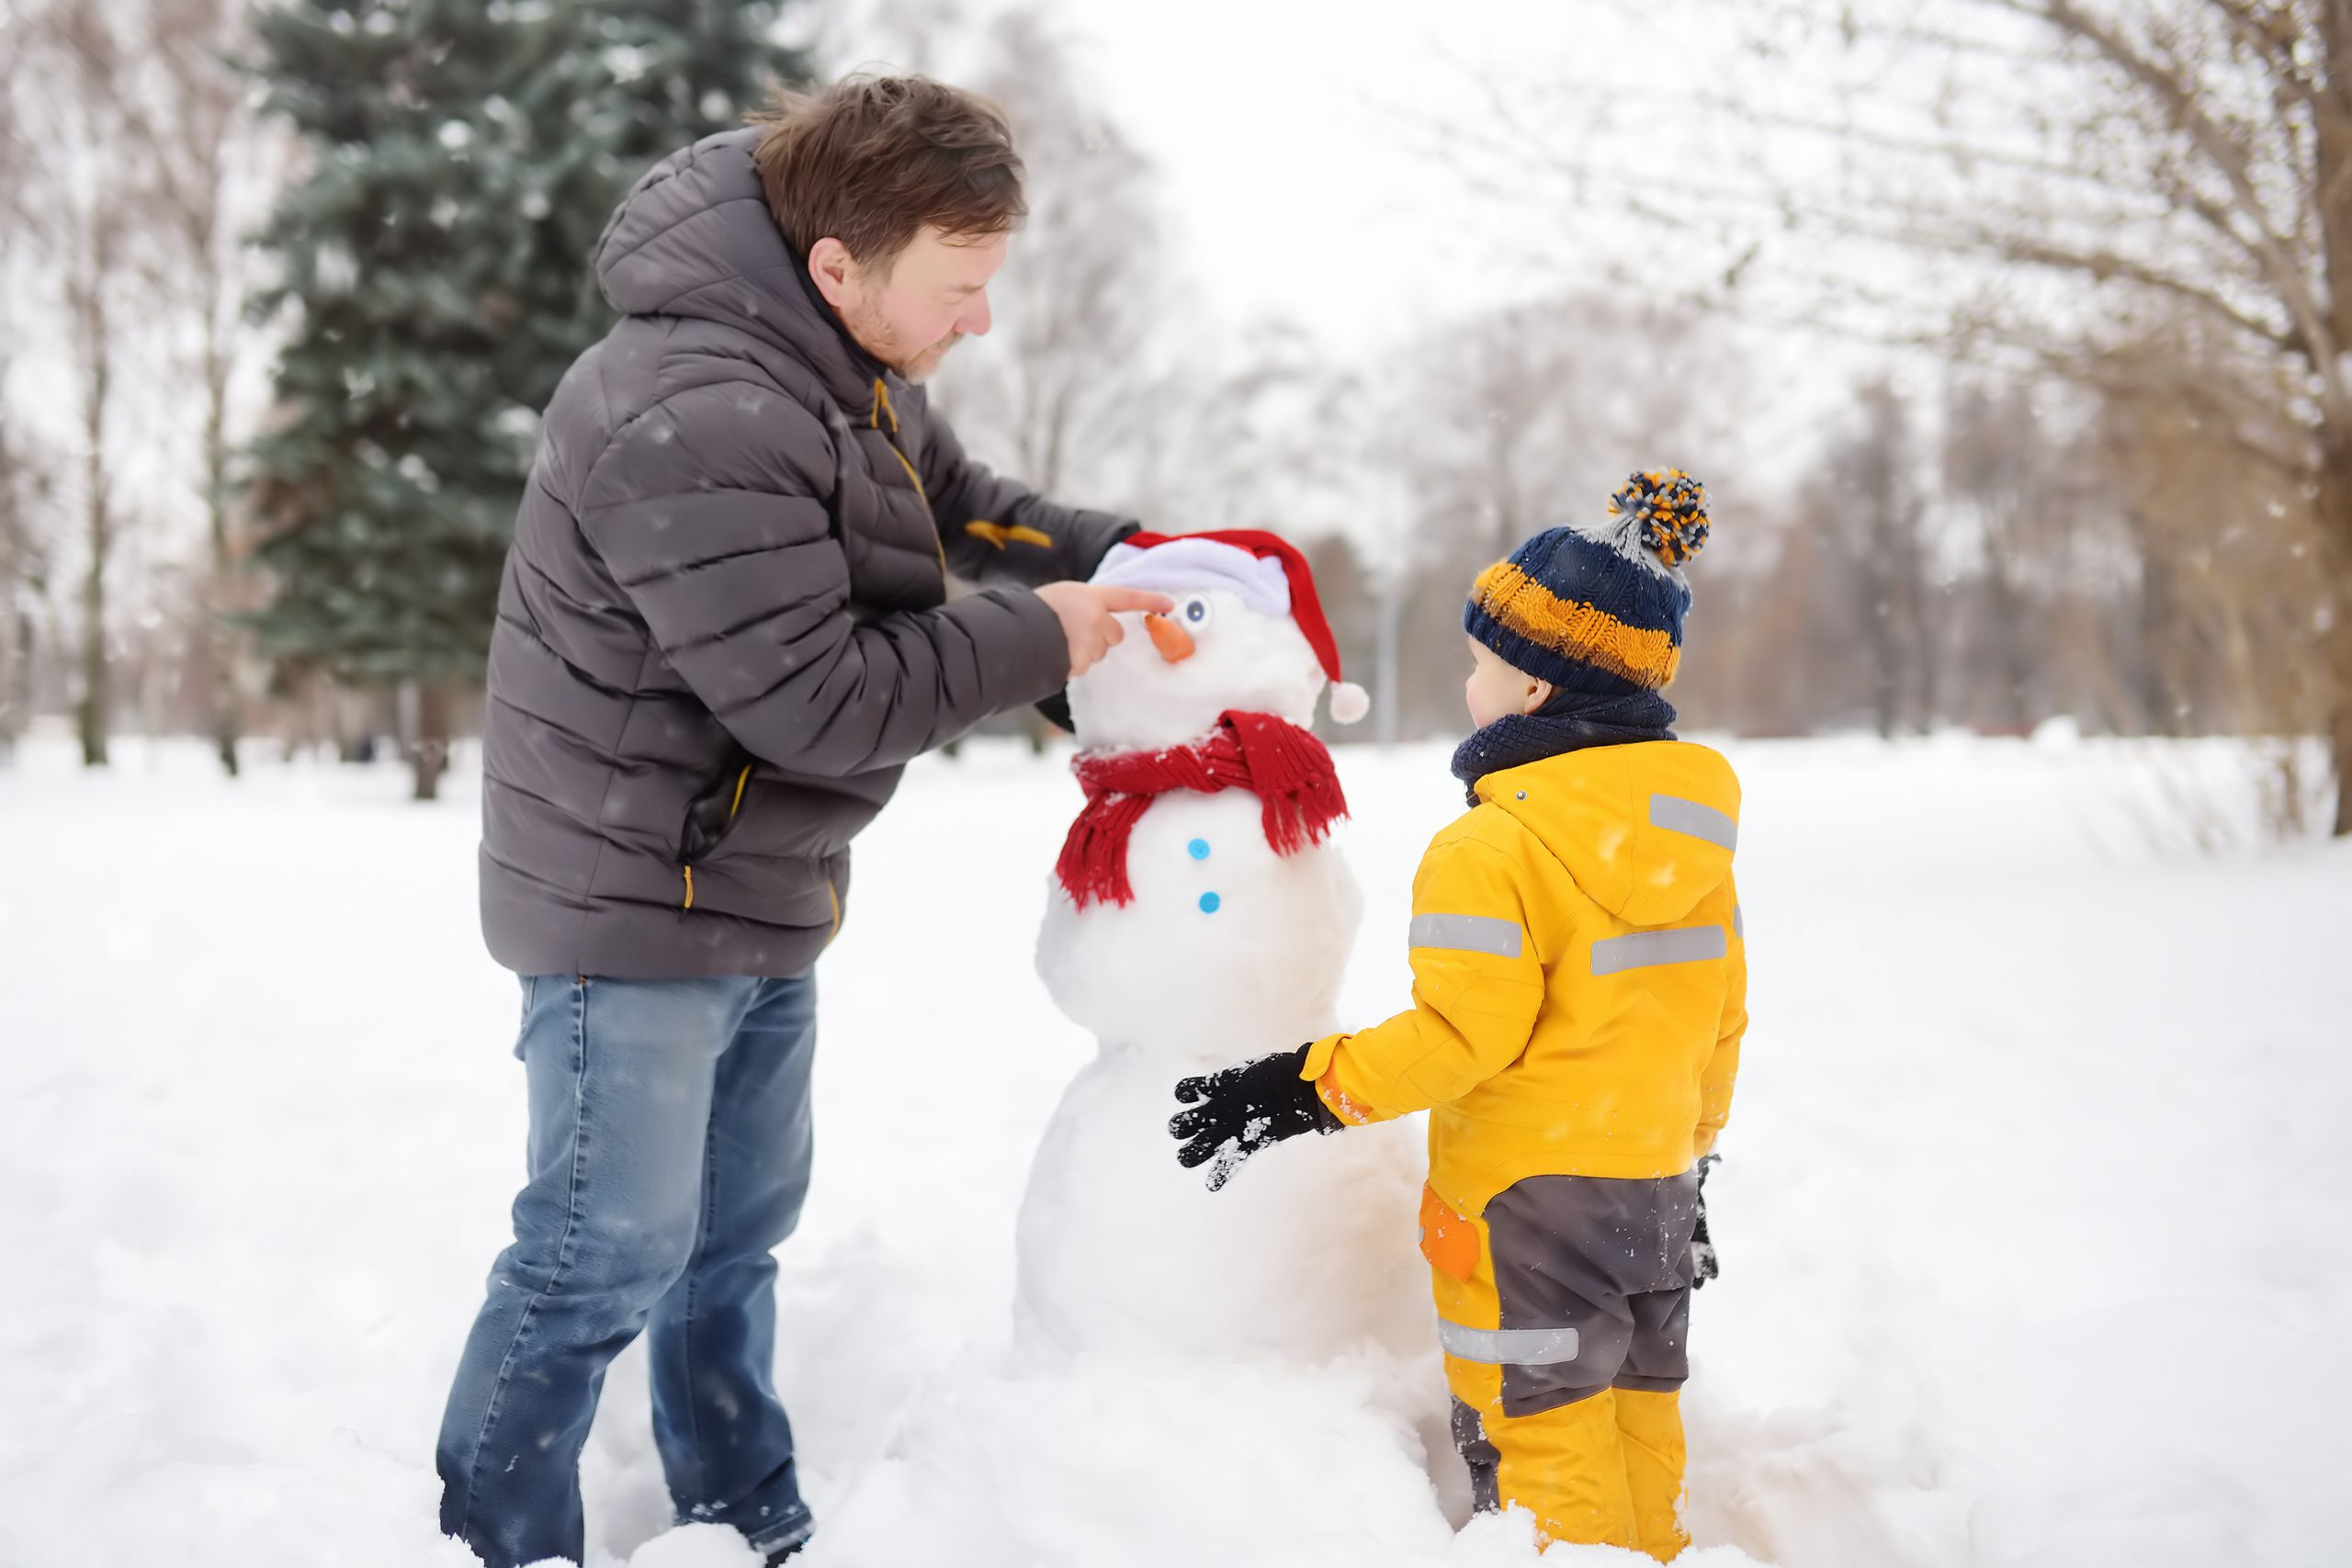 Father and son building a snowman